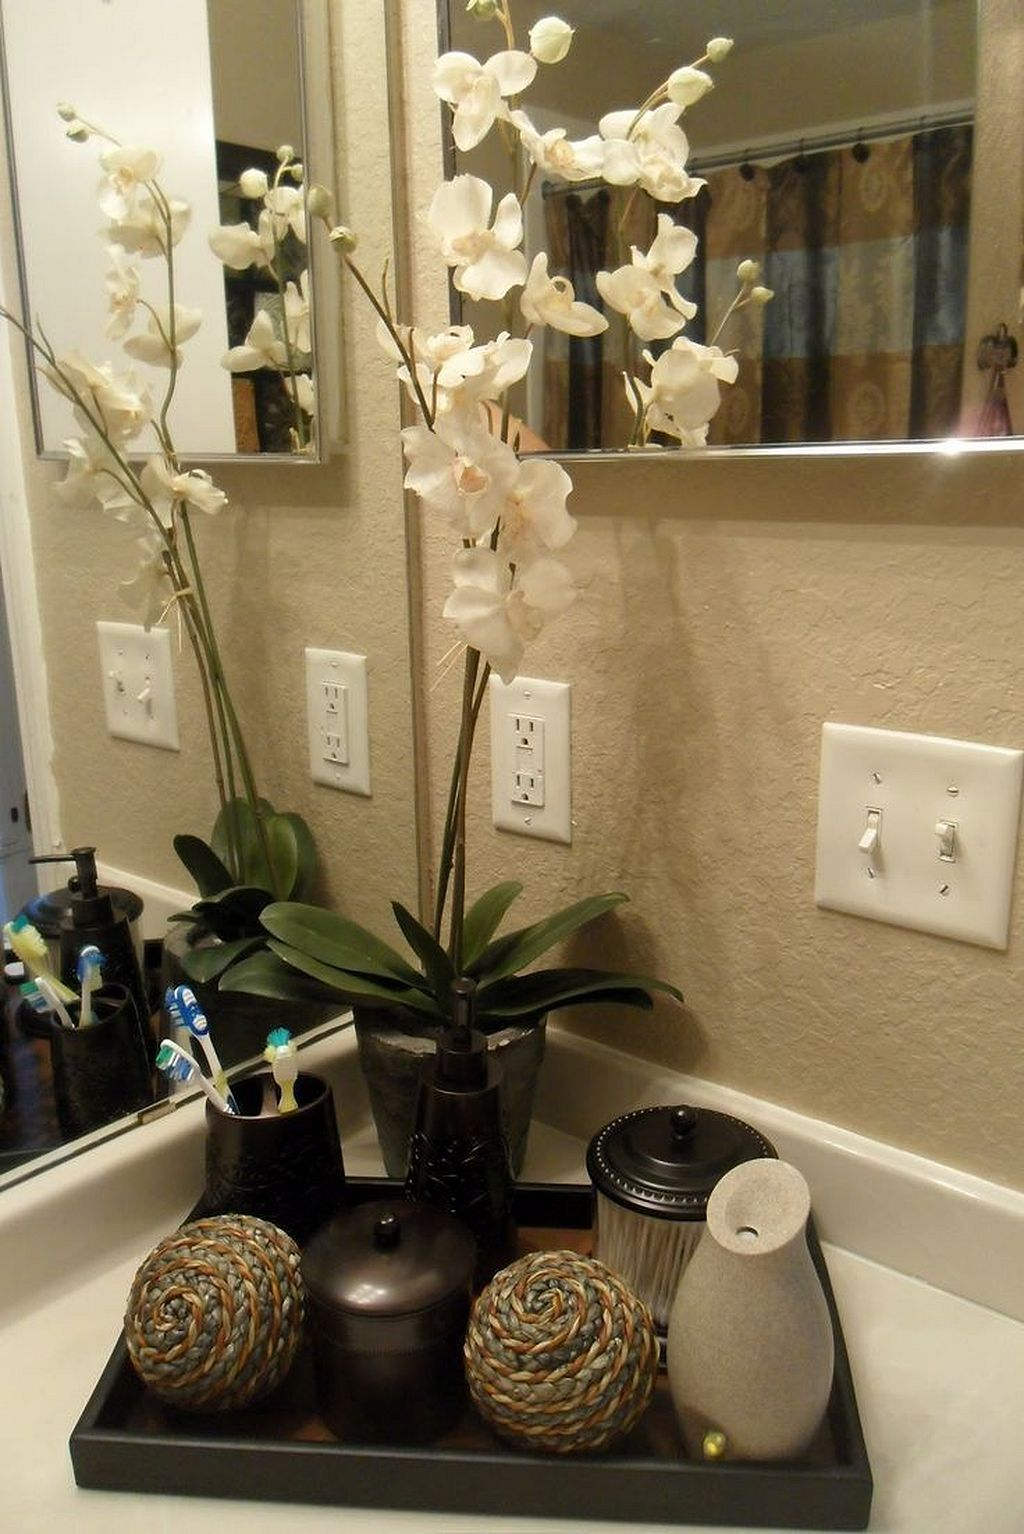 cheap bathroom decor ideas 10 bathroom cheap decor ideas asian home decor decor home decor 8917